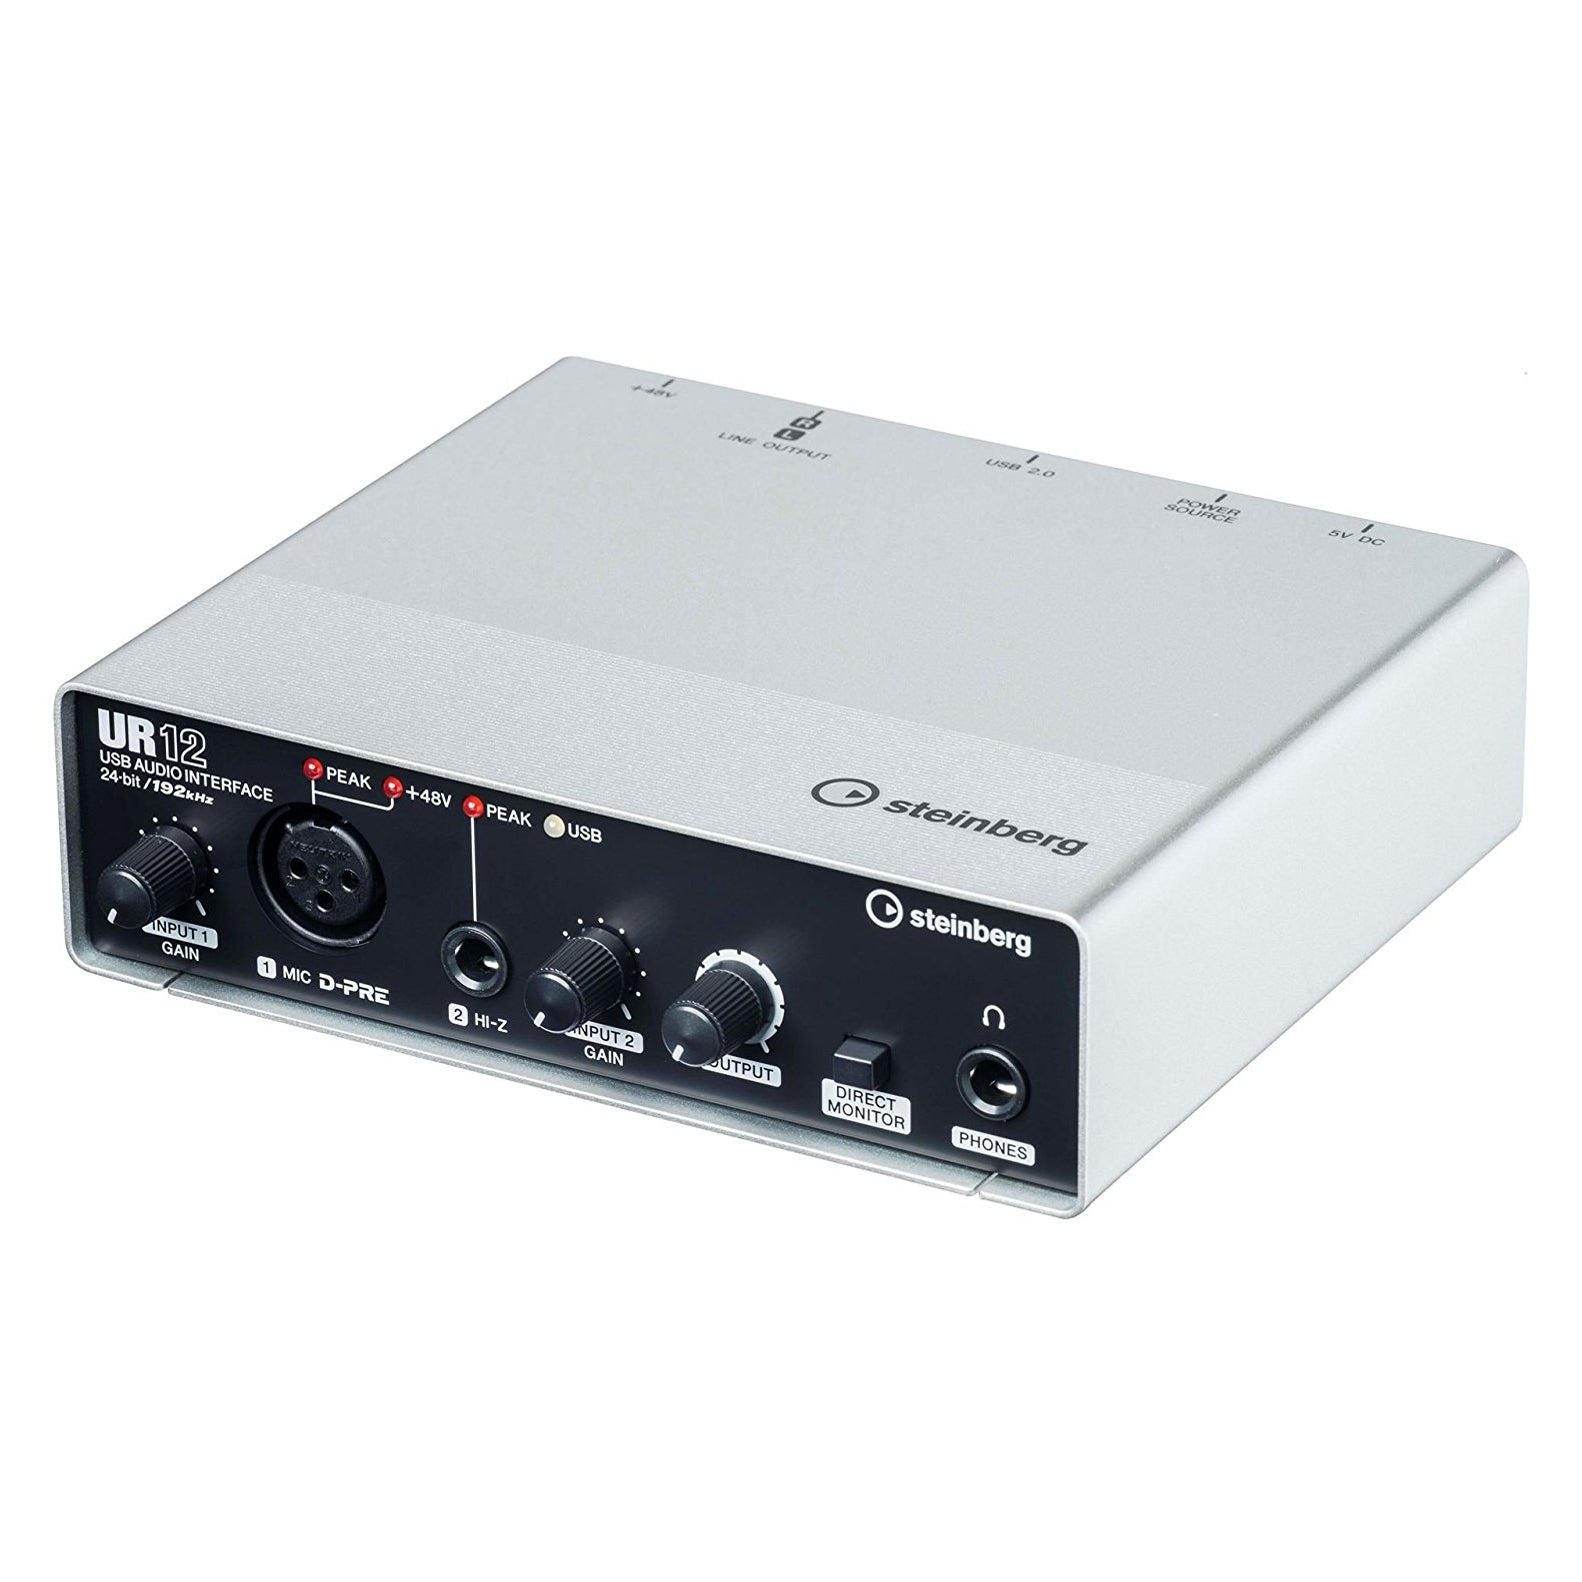 Steinberg UR12 USB Interface